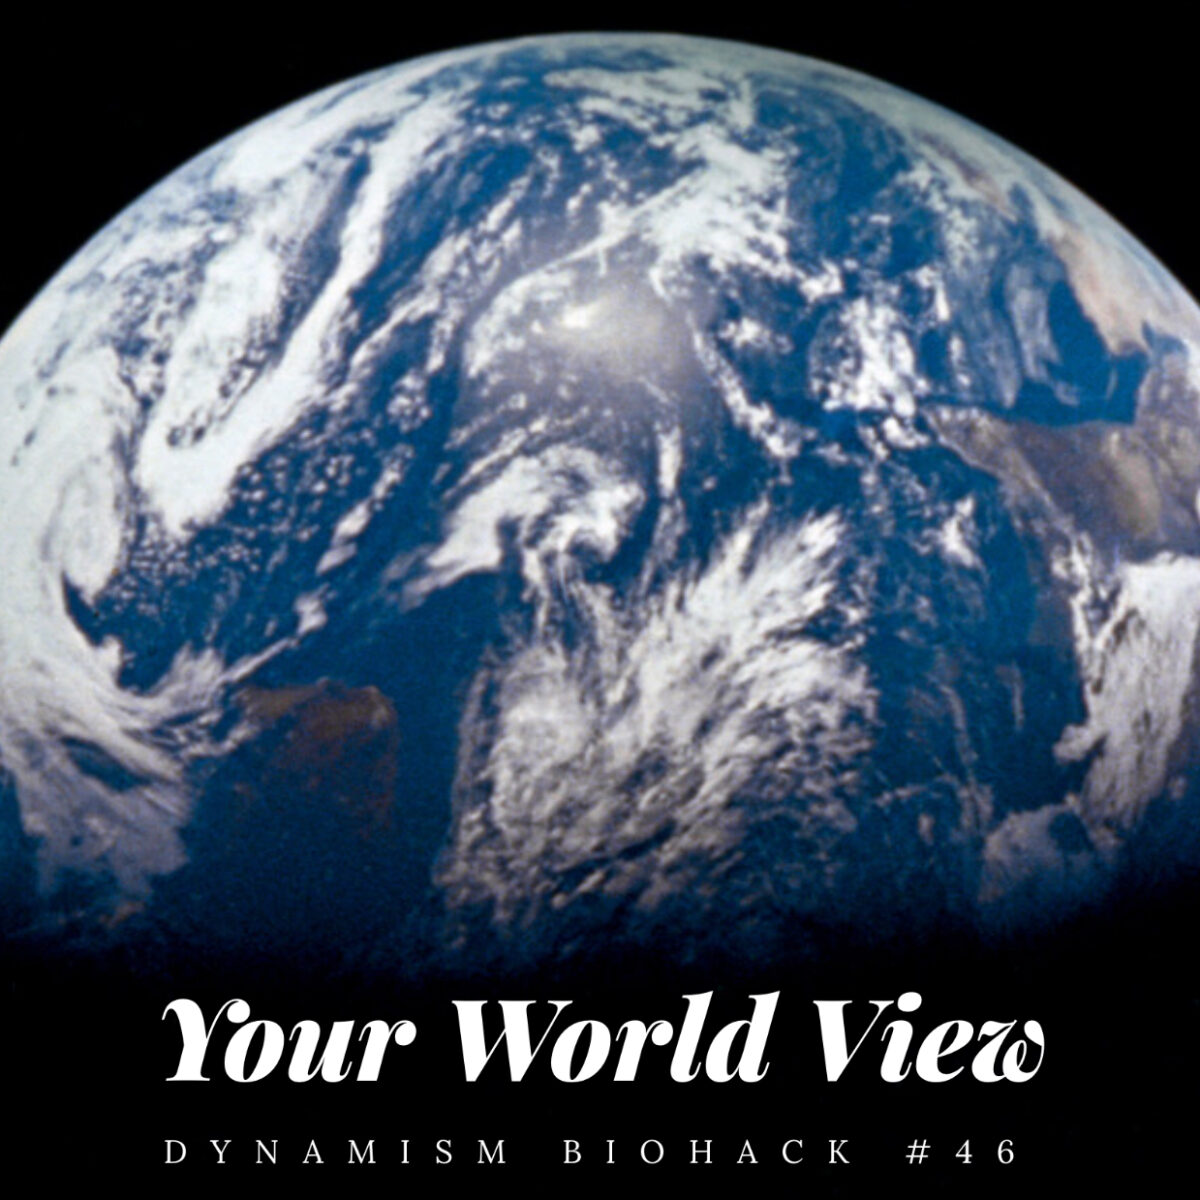 #46: Your World View